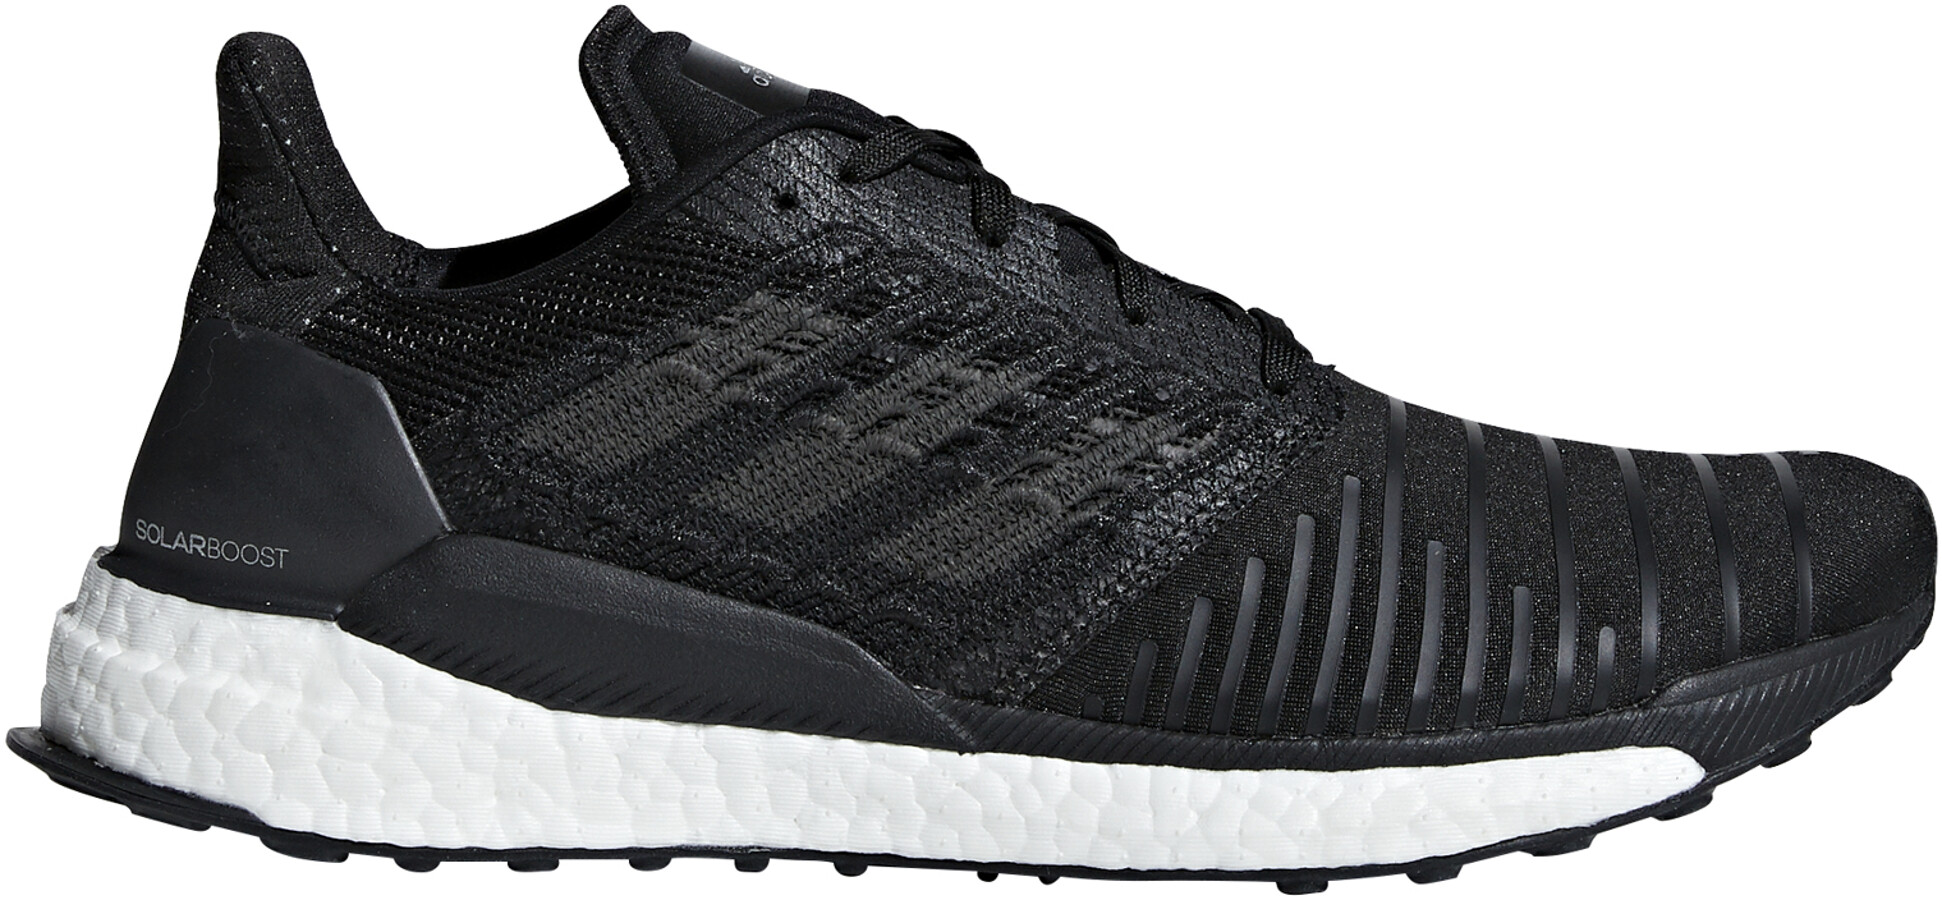 adidas SolarBoost Running Shoes Men black at Bikester.co.uk